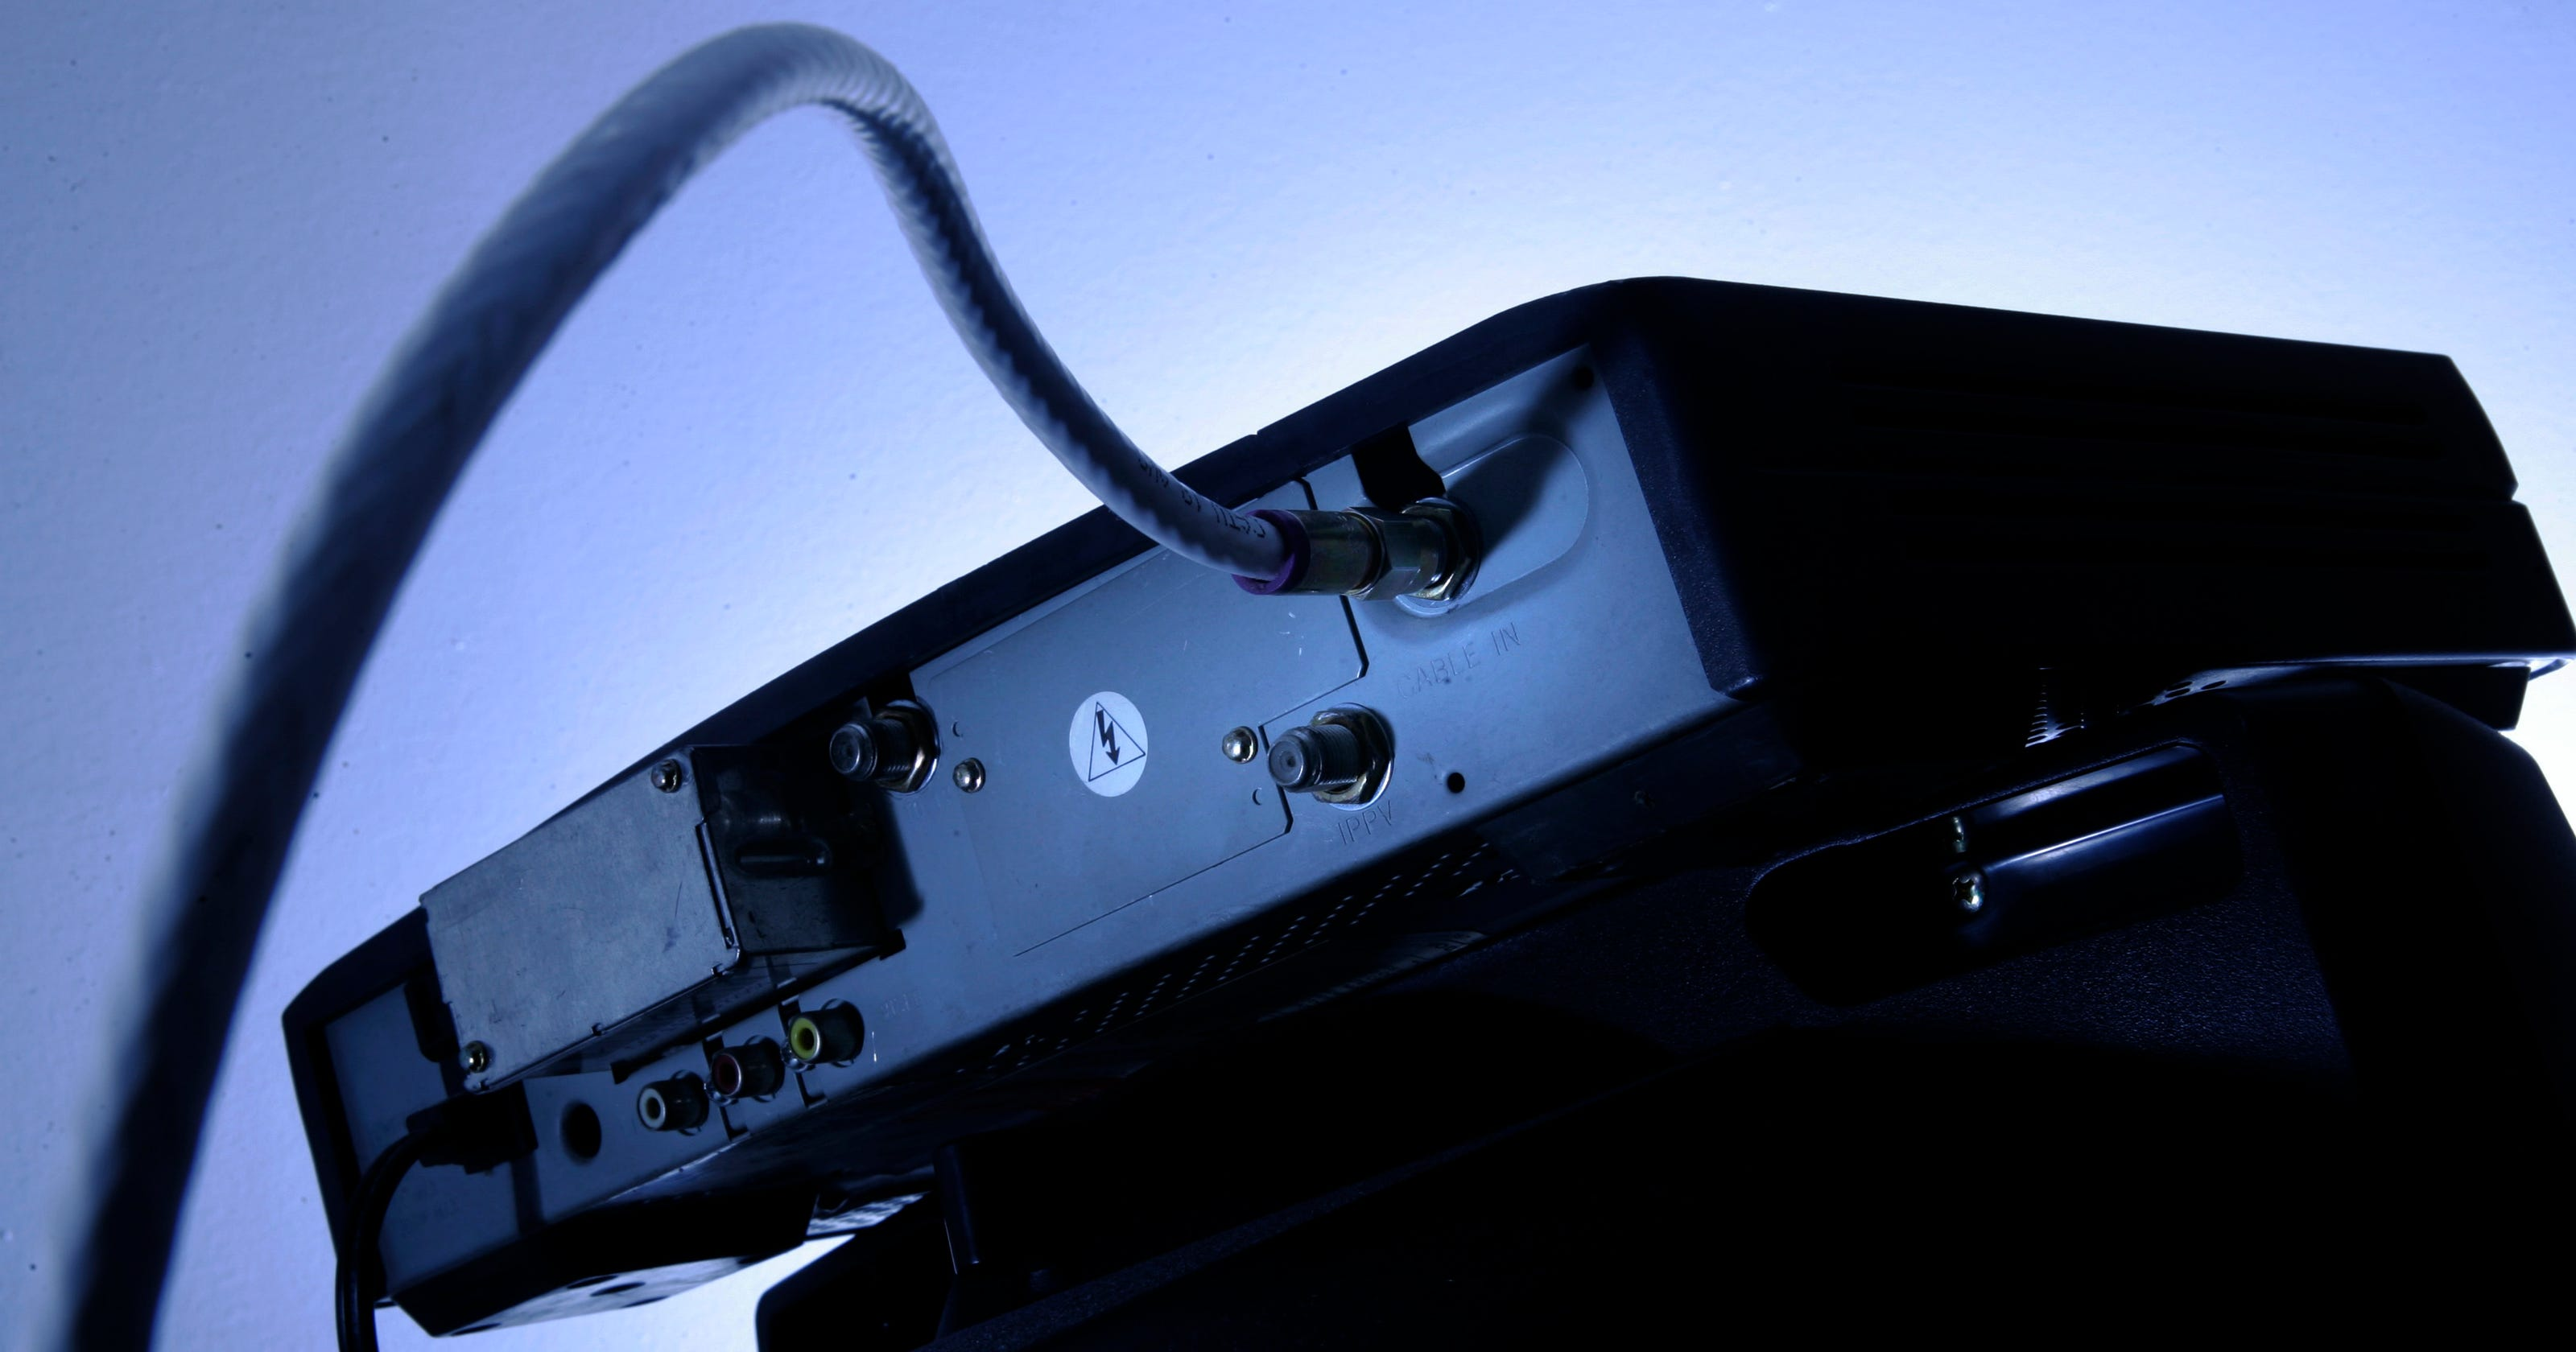 TV rate hikes: Why cable bills are rising again and what can